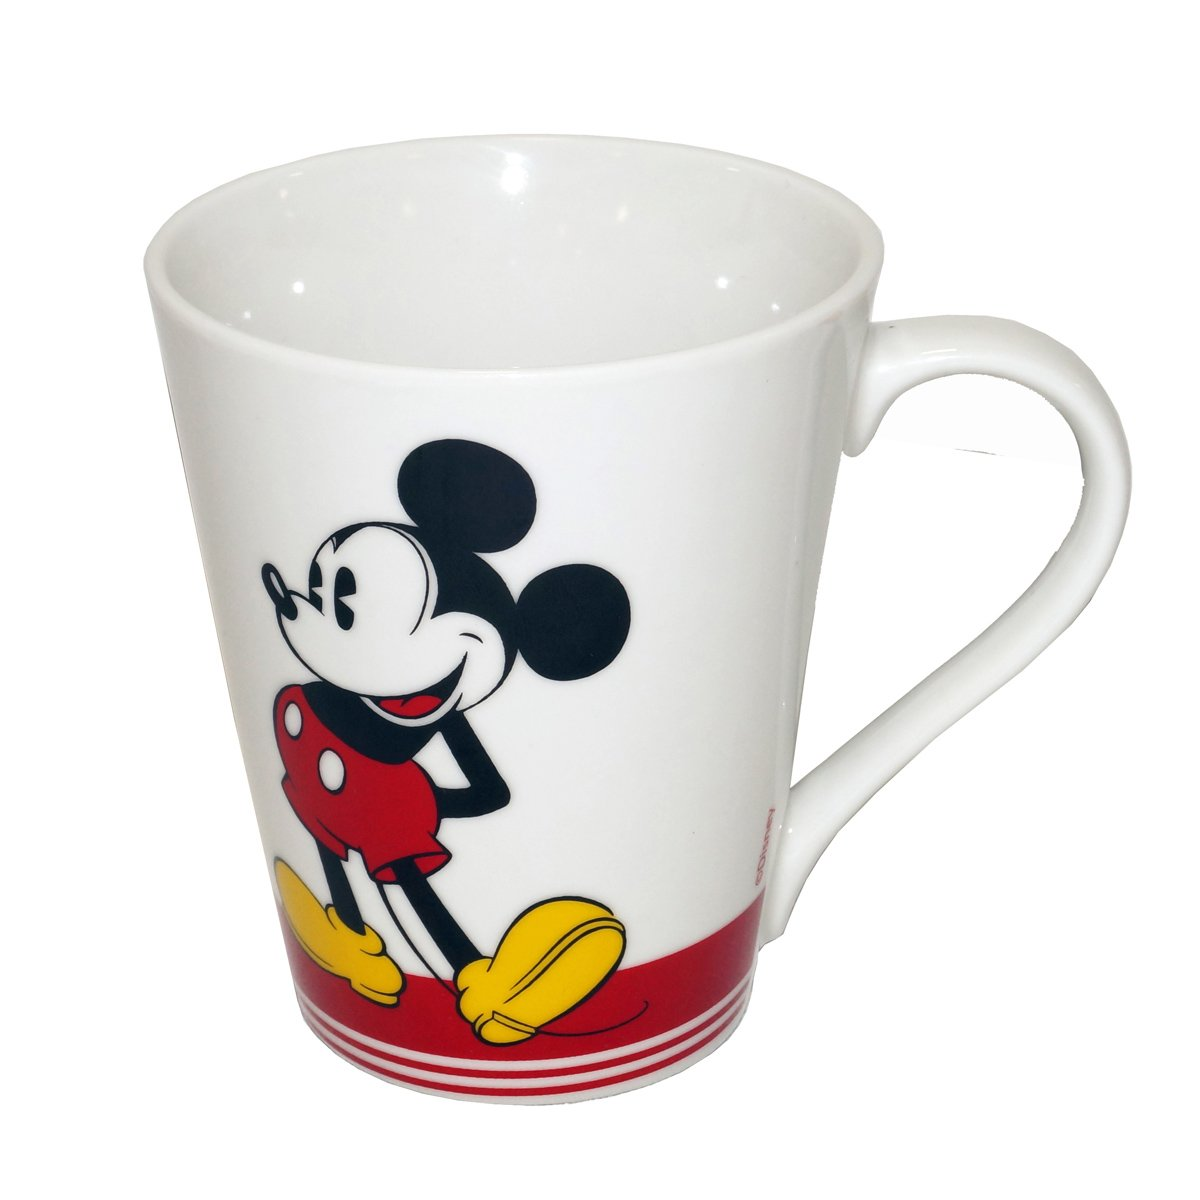 Taza de porcelana 12 oz mickey in love siglo xxi sears for Tazas porcelana